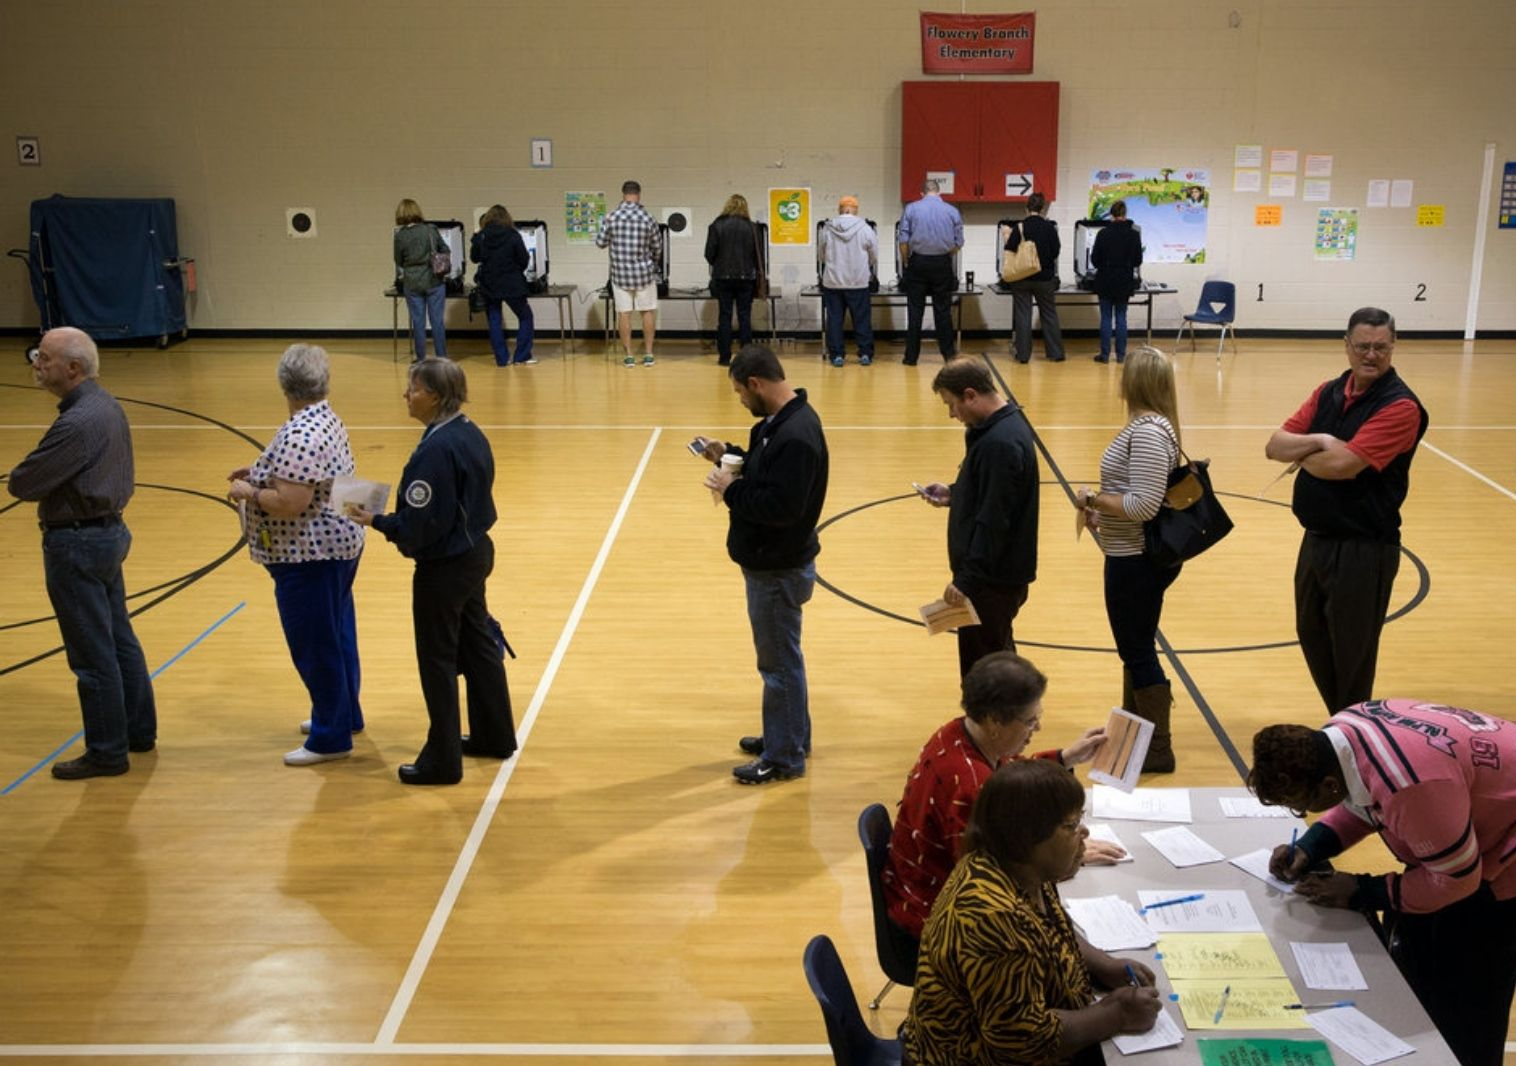 voting line in a gym